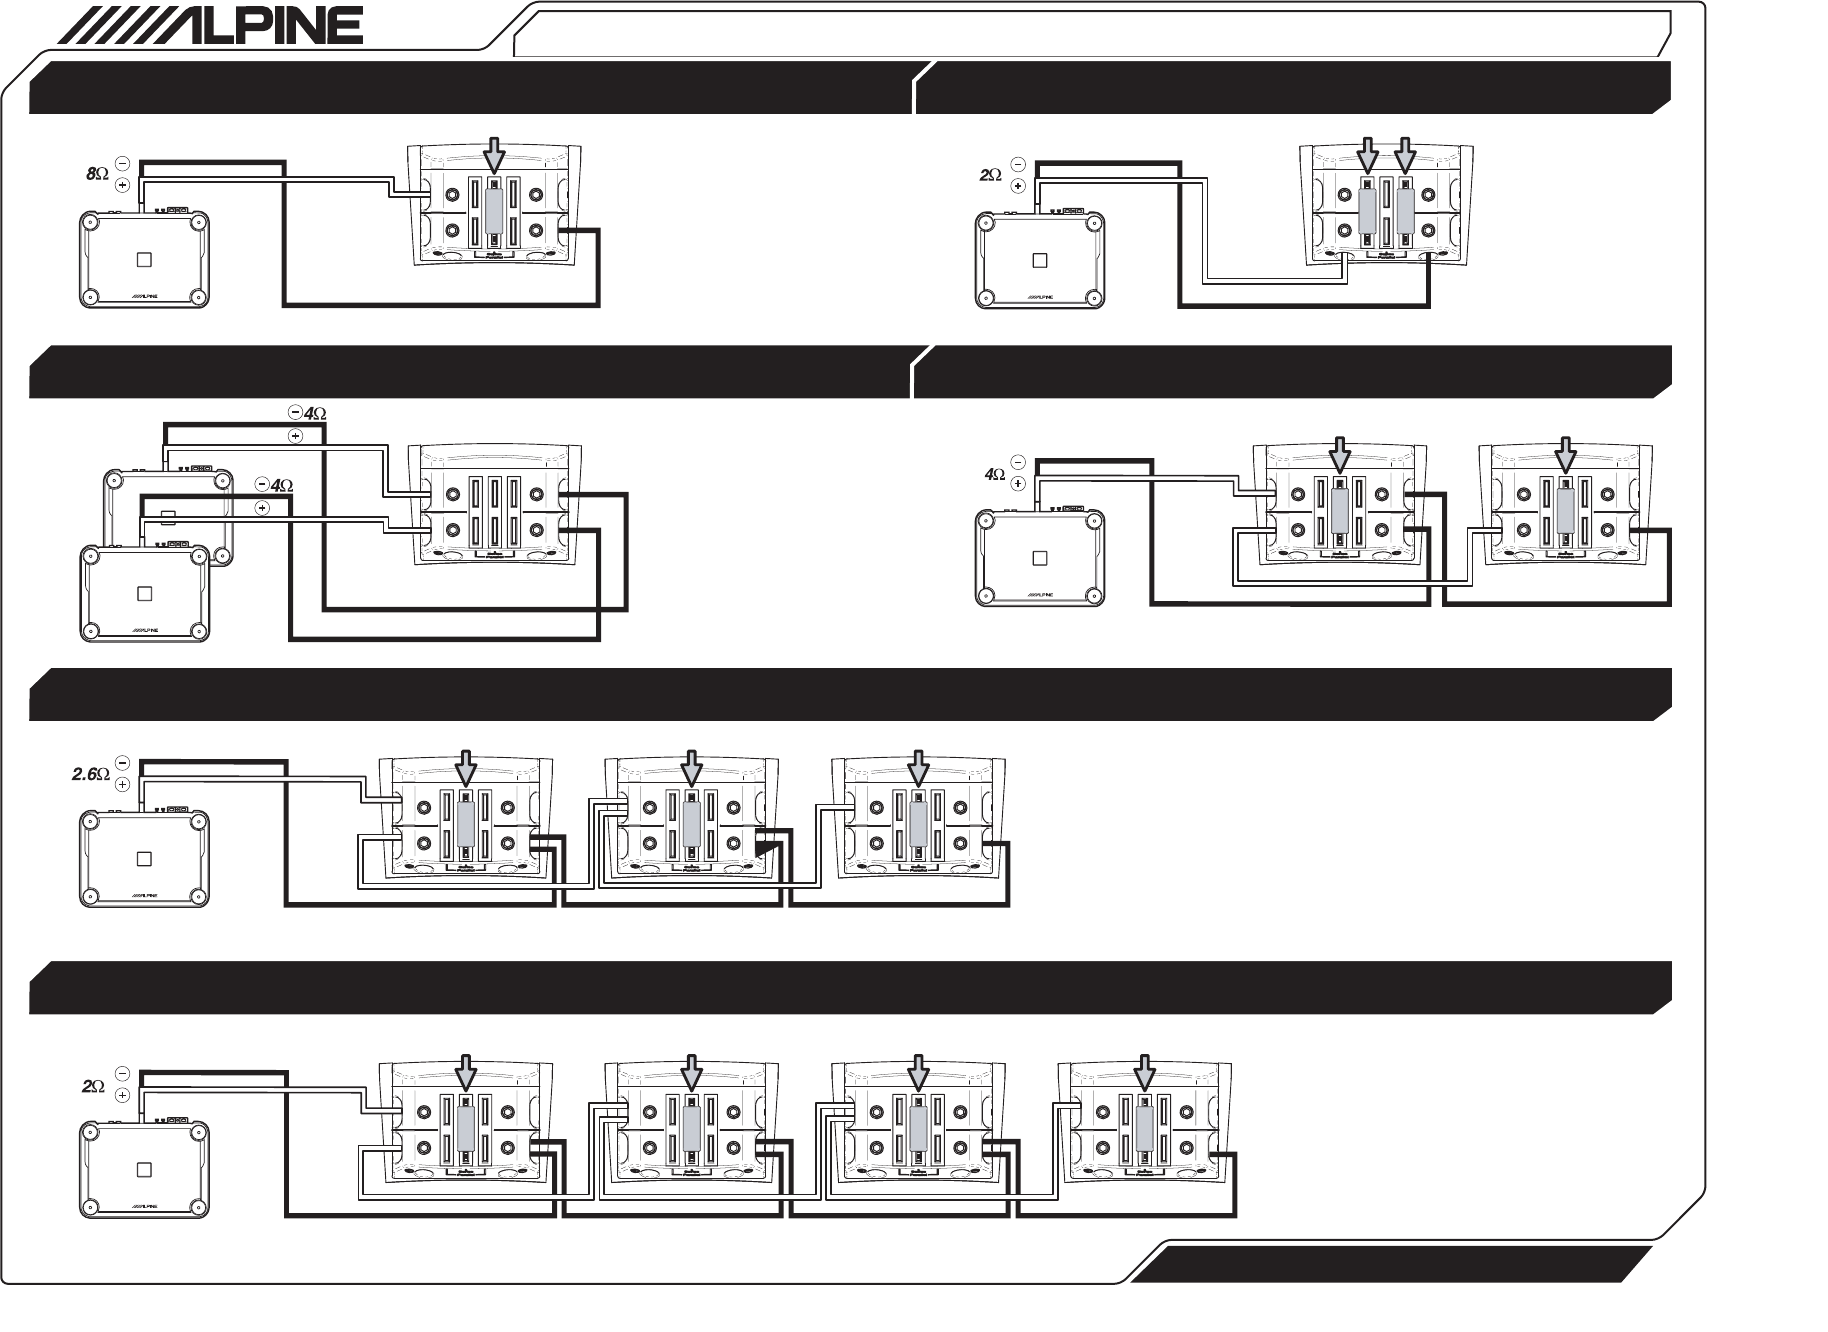 alpine type x 12 wiring diagram meyer snow plow e47 page 4 of car speaker swx 1243d user guide